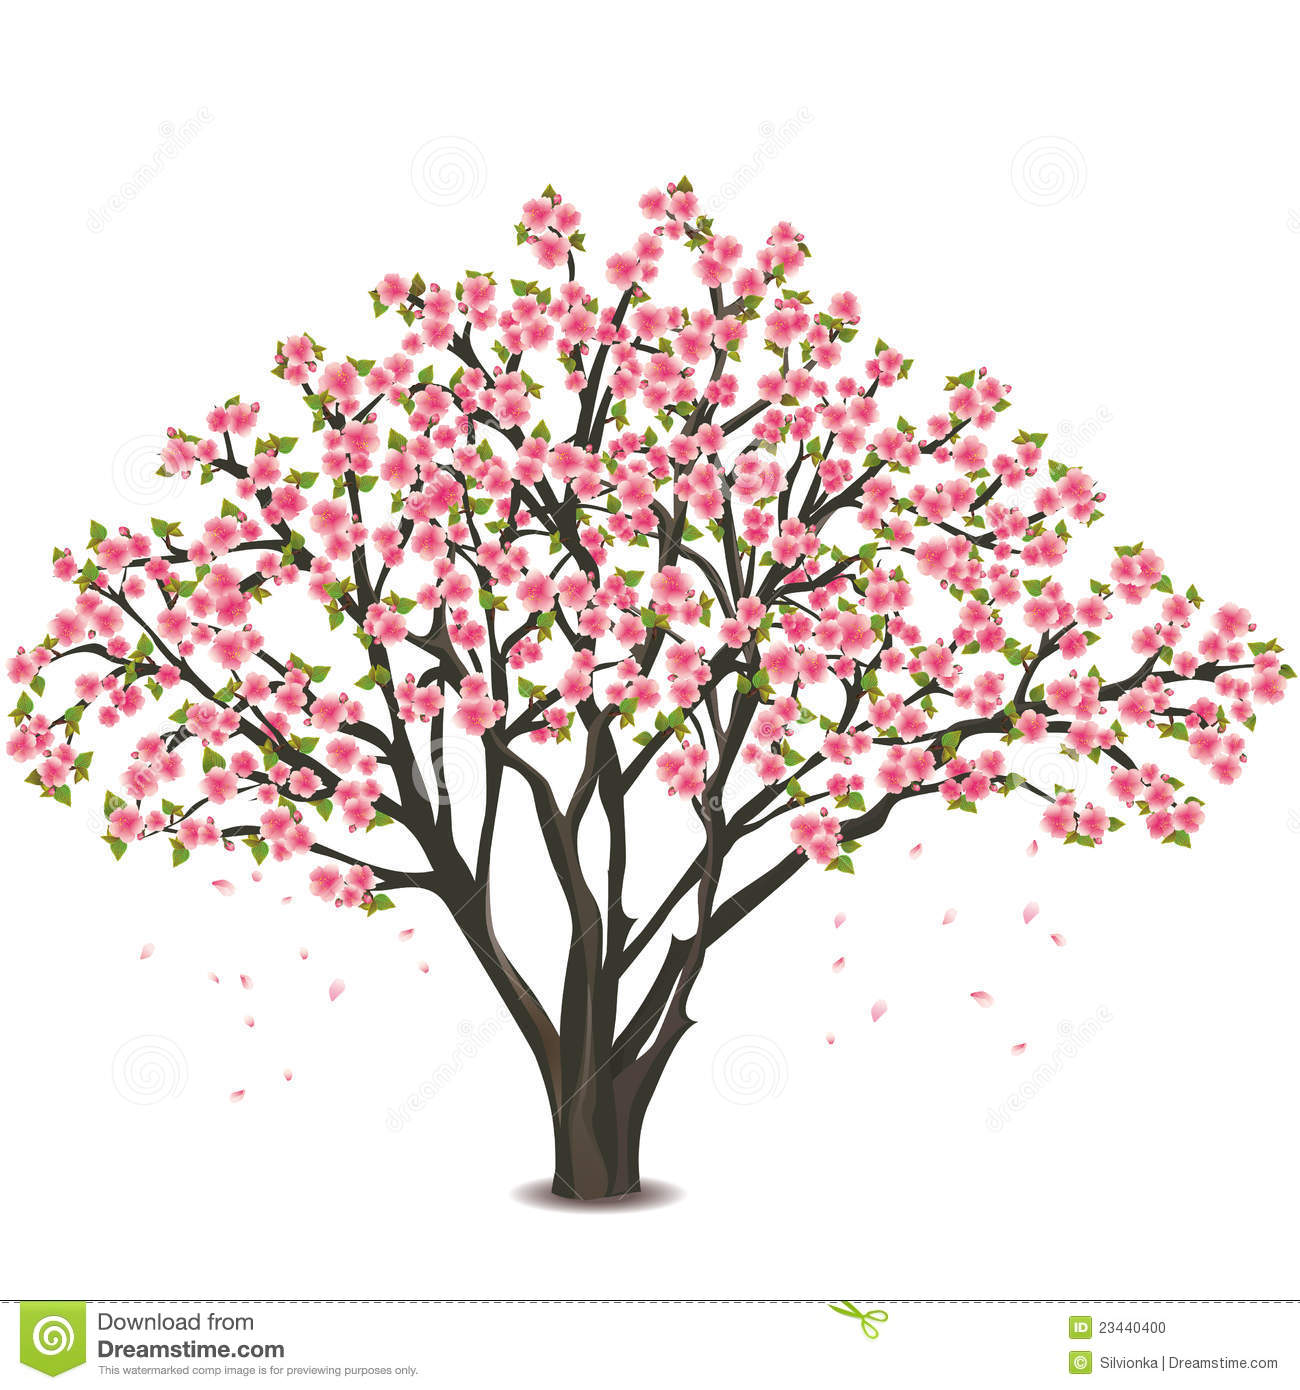 Dogwood tree clipart 3 » Clipart Station.